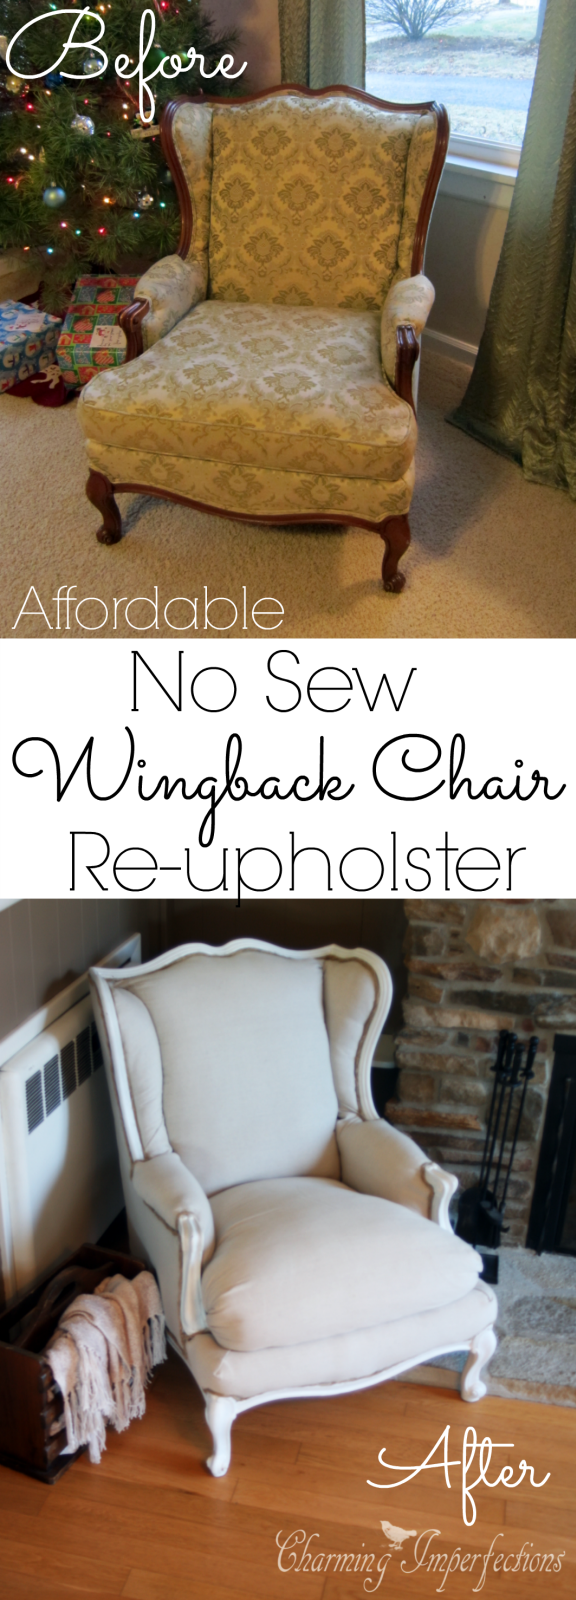 Super Affordable DIY No Sew Wingback Chair Re Upholster What A Transformation